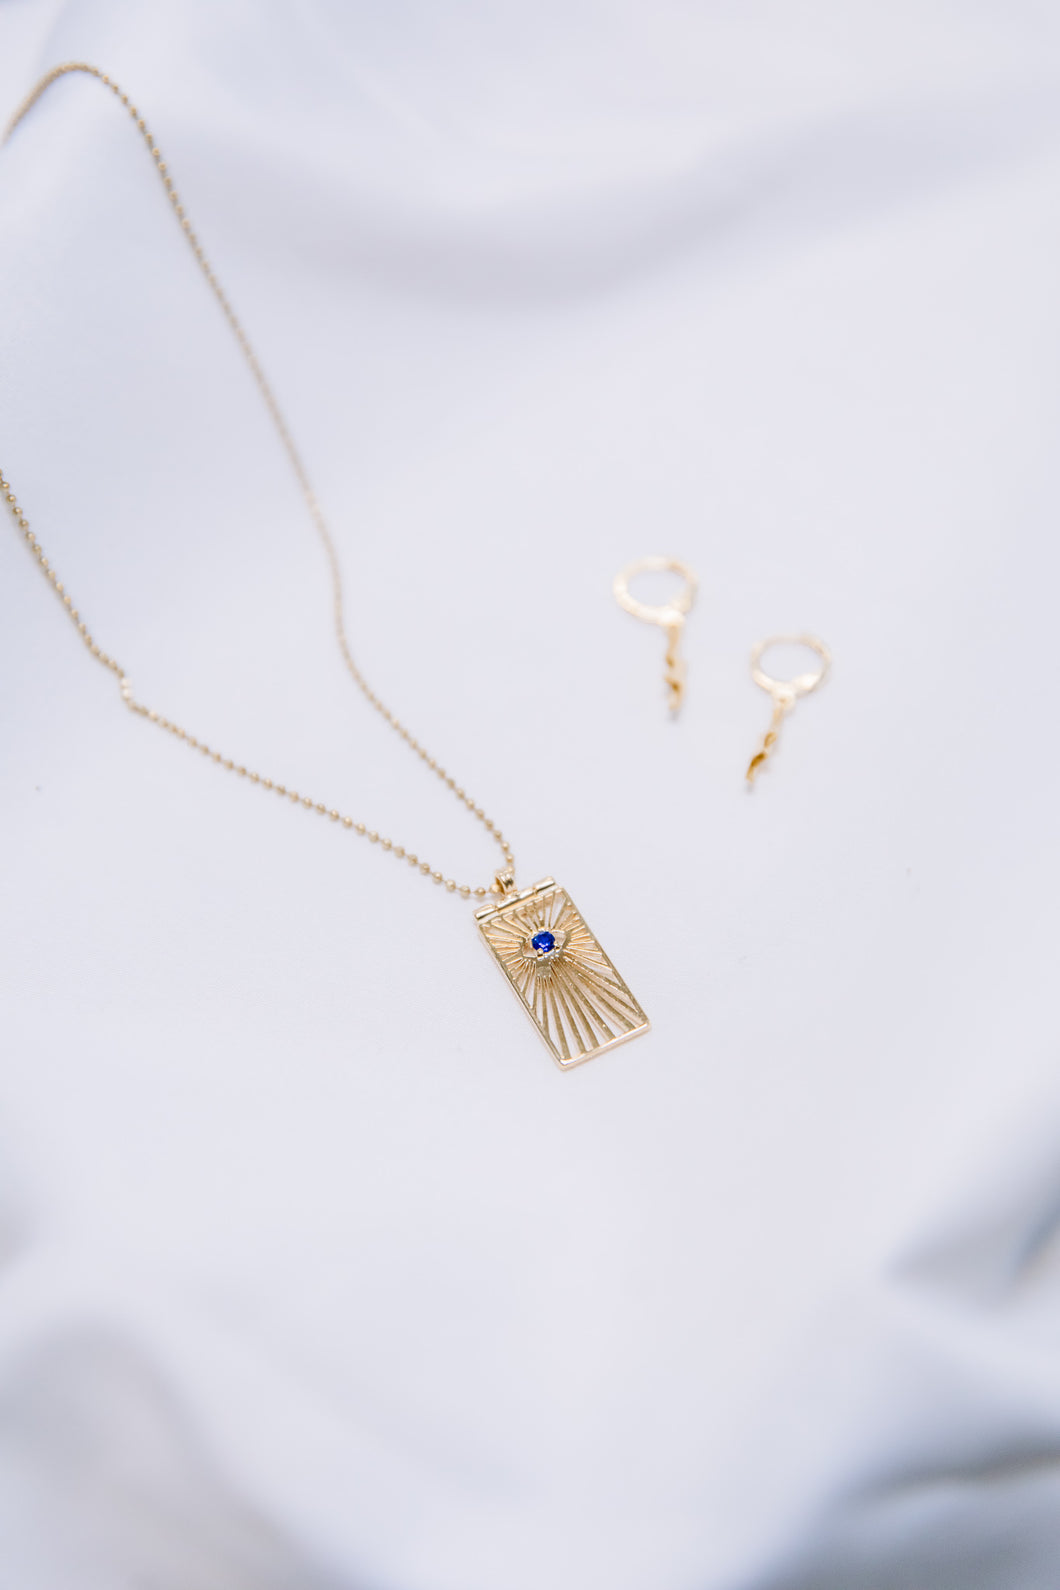 The blue-eyed necklace //